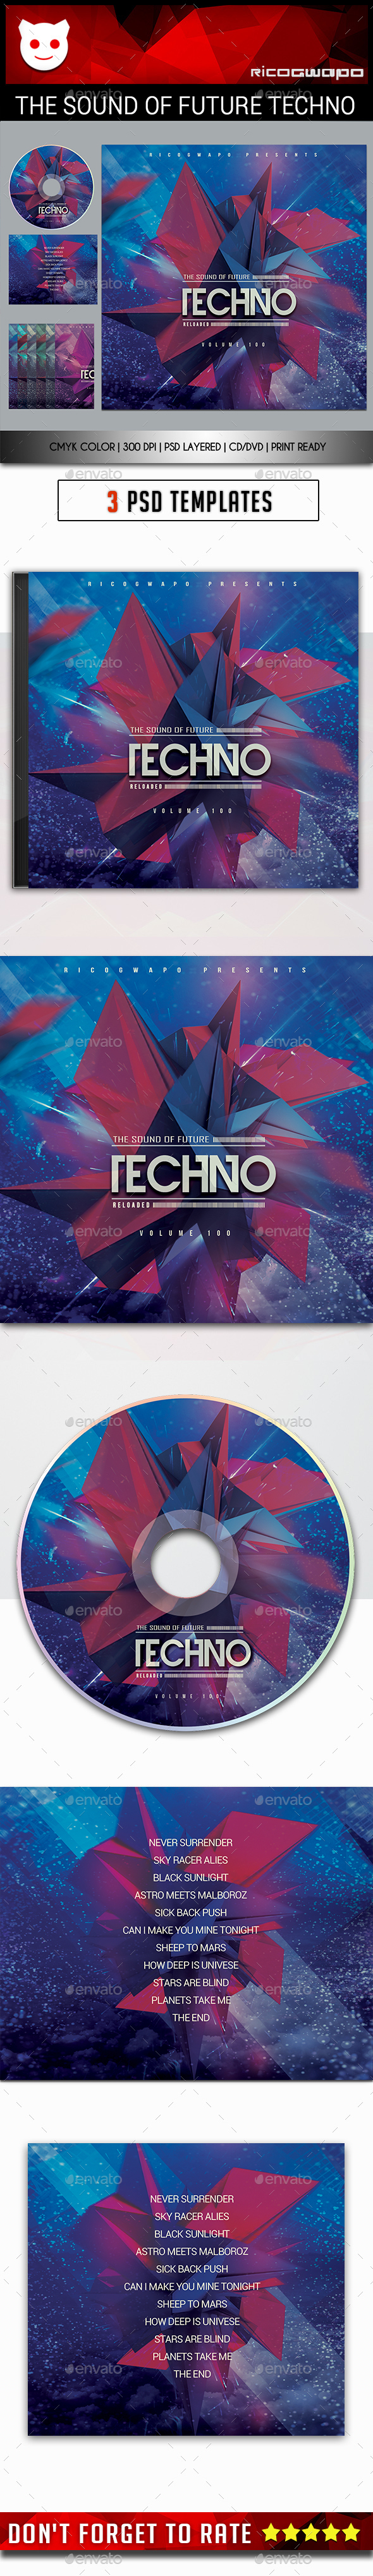 The Sound of Future Techno Cd/DVD Template - CD & DVD Artwork Print Templates